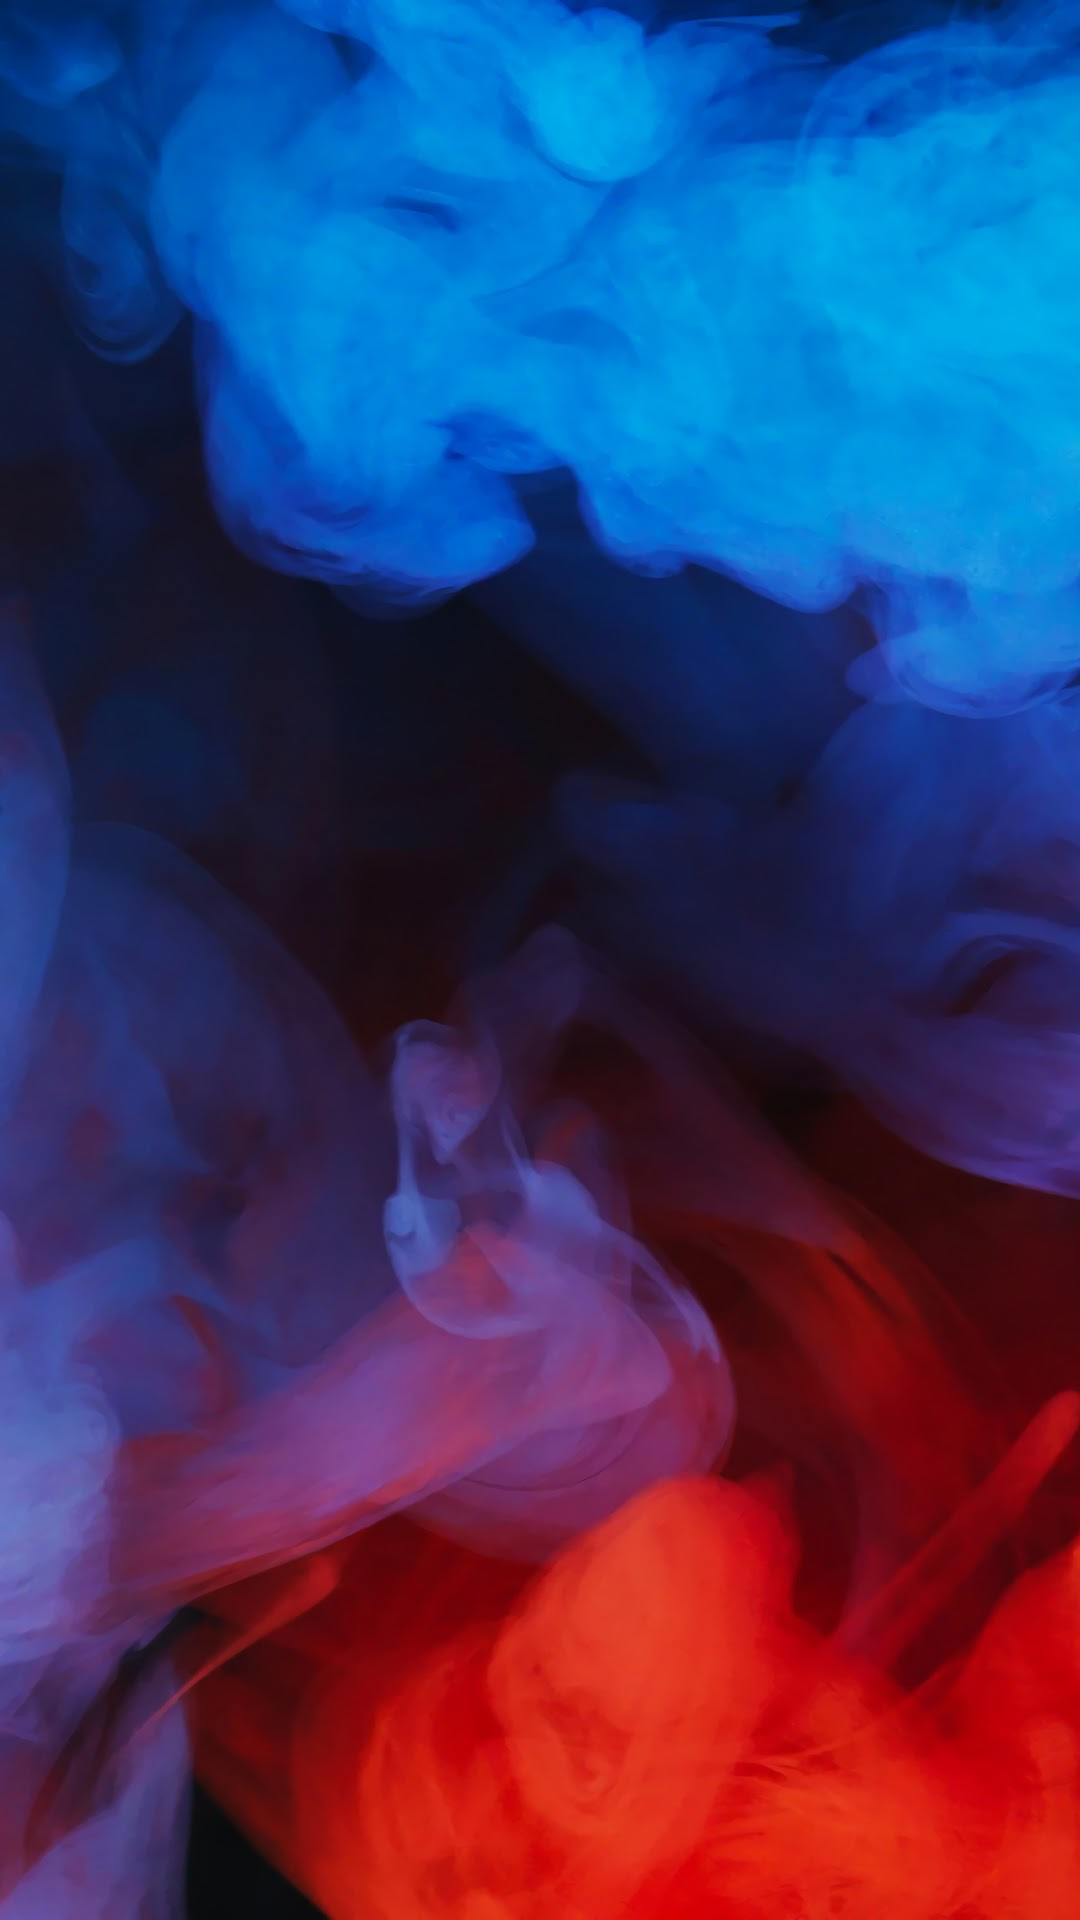 Blue Red Smoke Abstract 4k Wallpaper 53